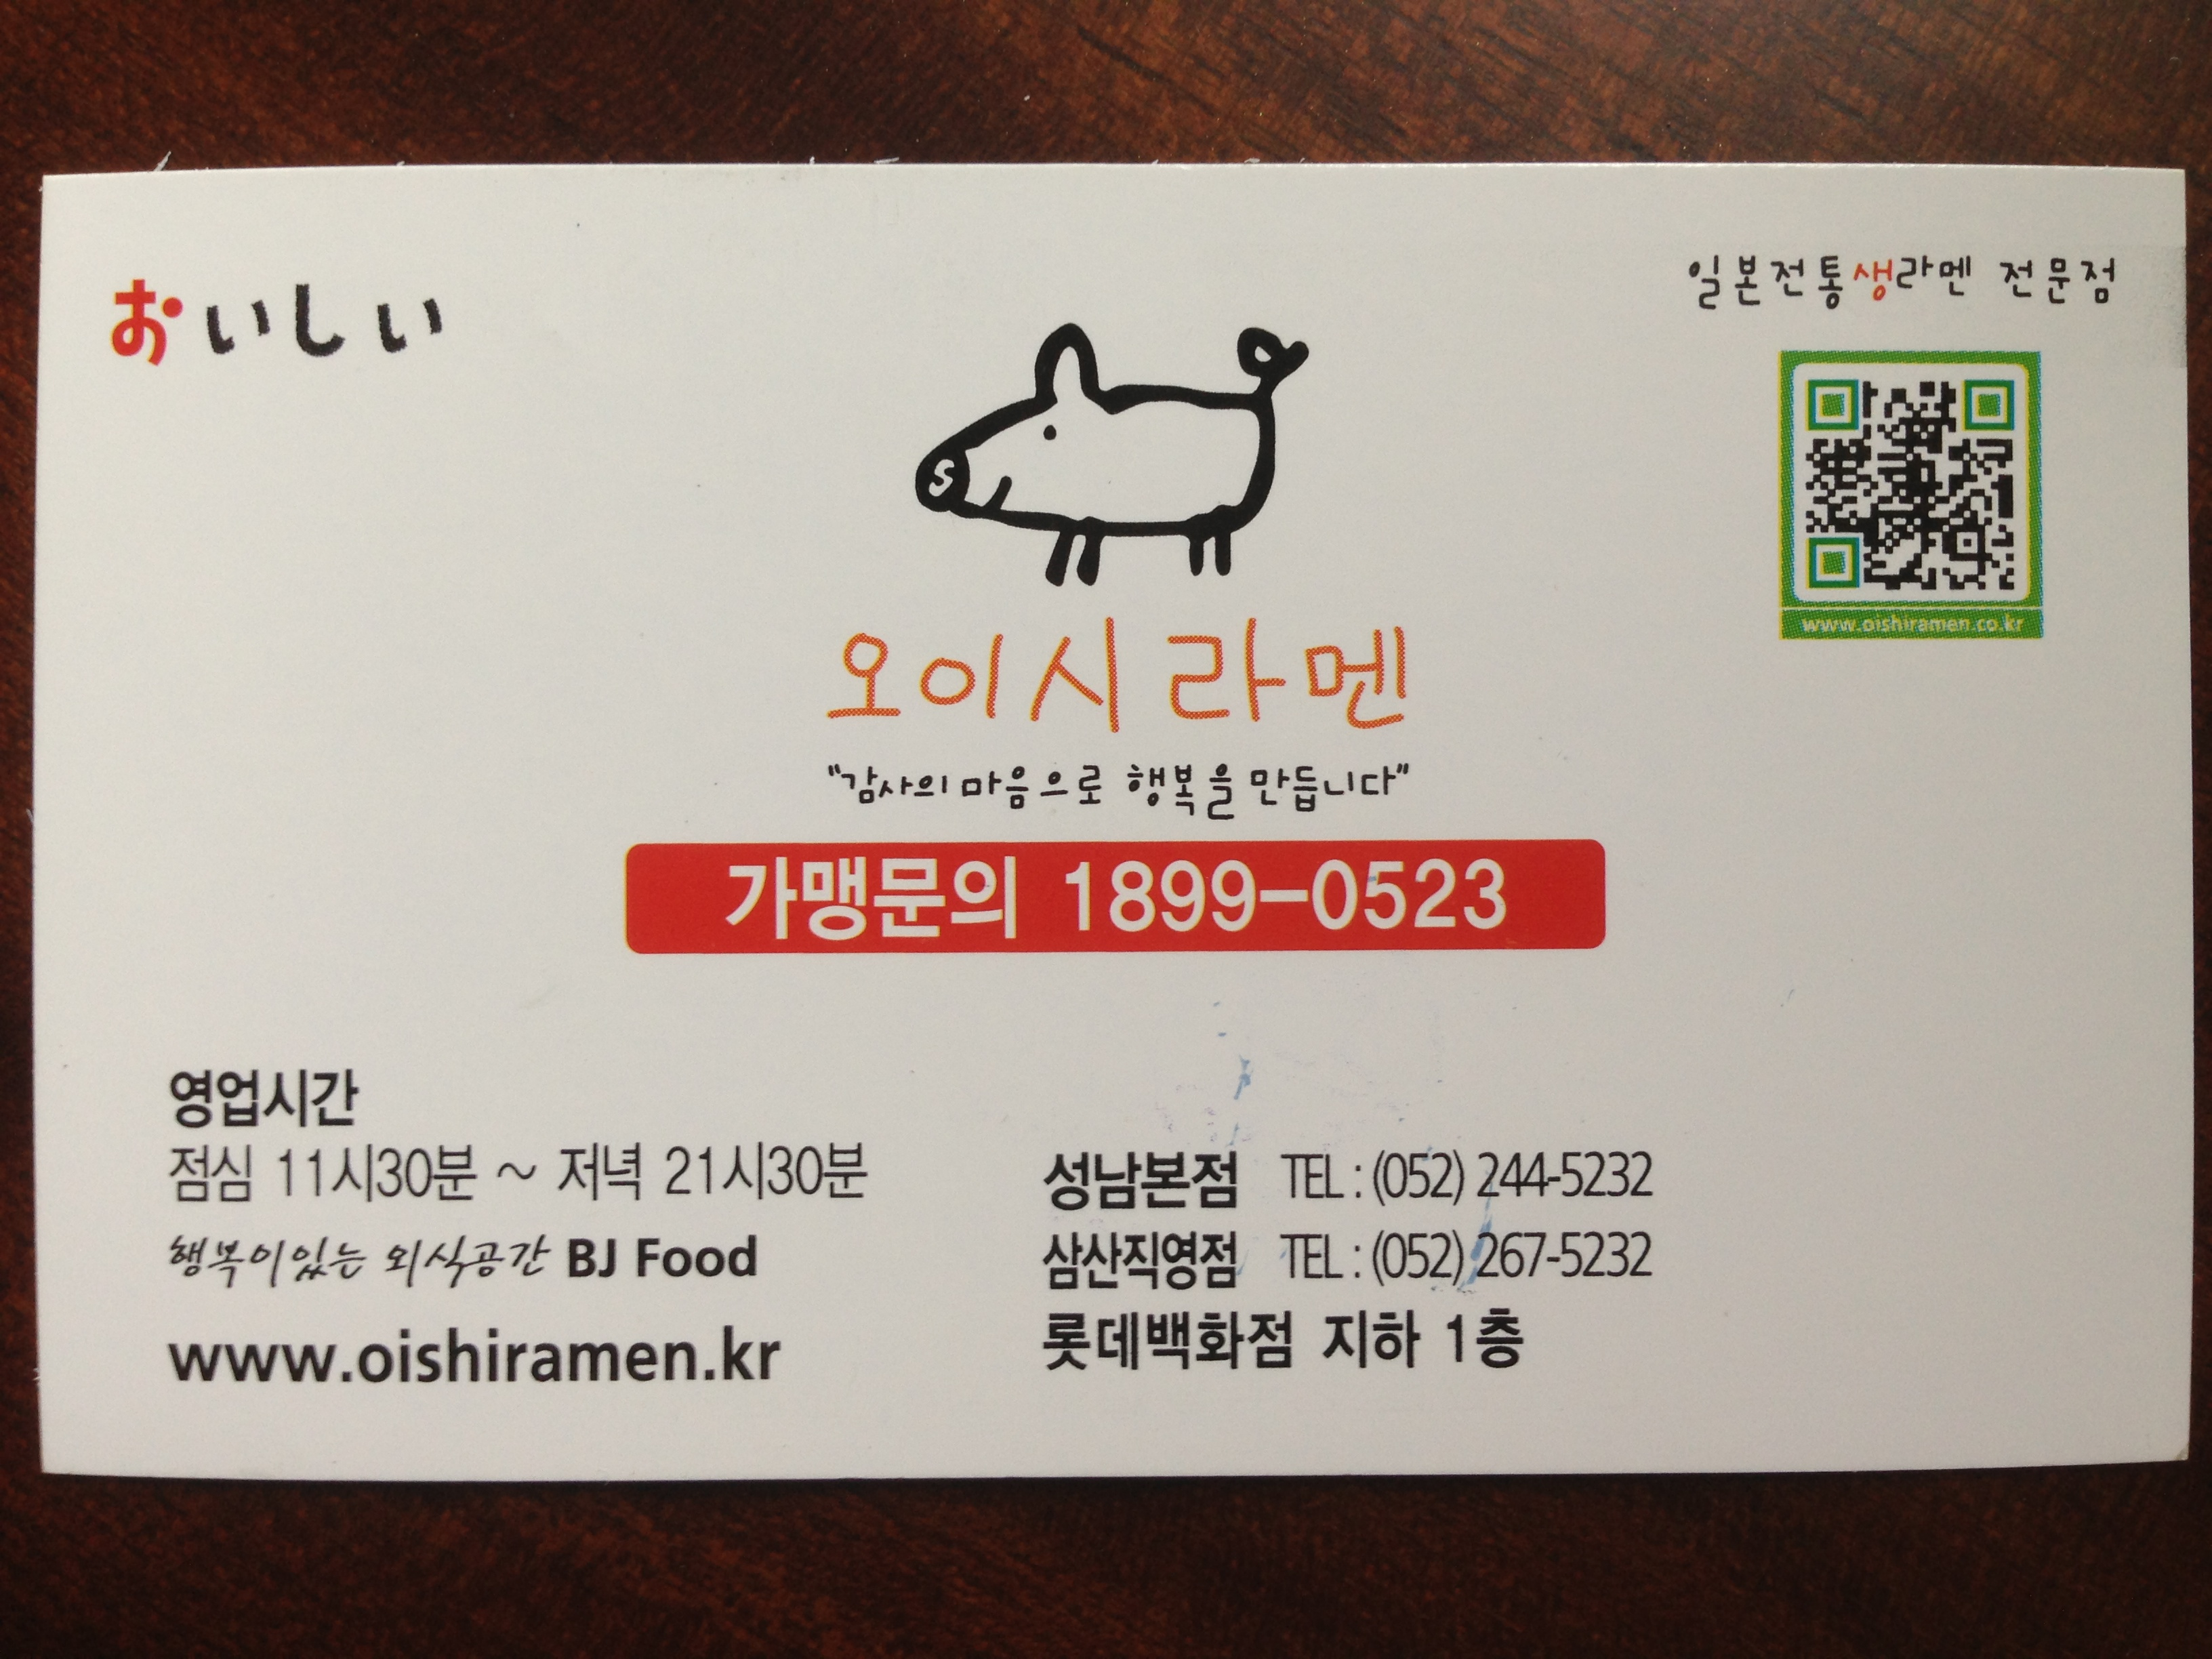 Old downtown living in south korea oishi ramen business card reheart Gallery